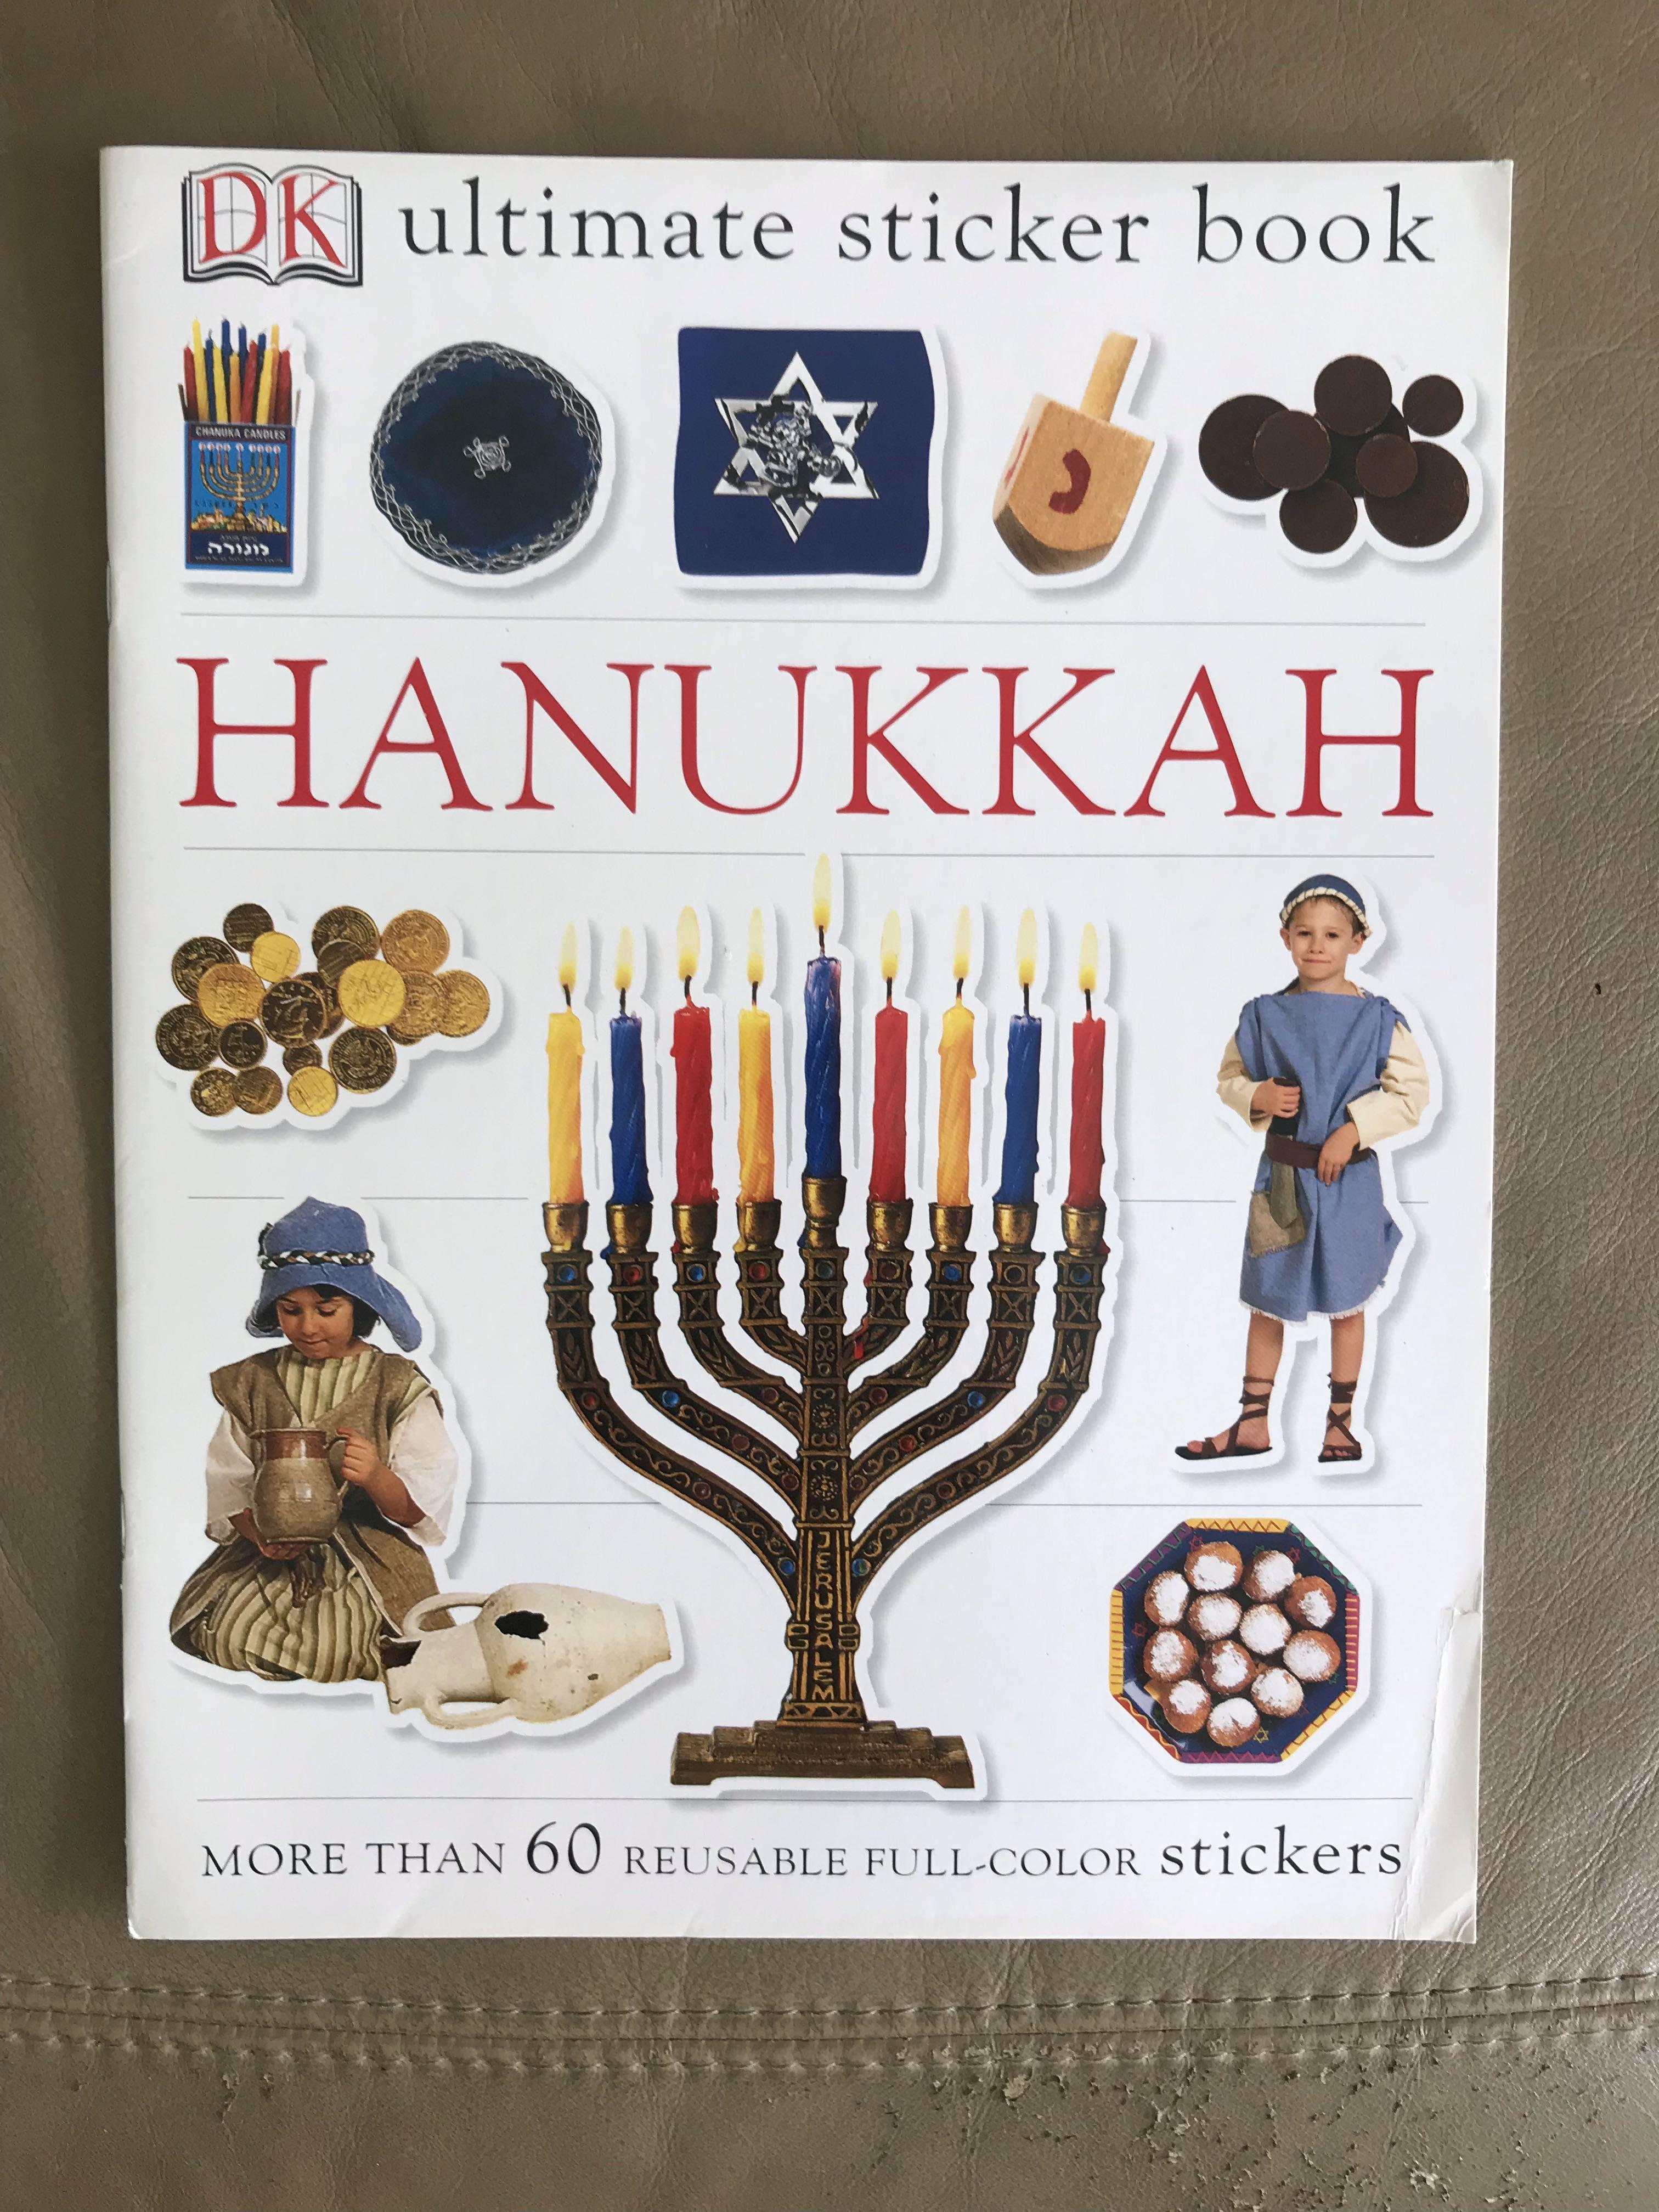 Hanukkah More Than 60 Reusable Full-Color Stickers Ultimate Sticker Book